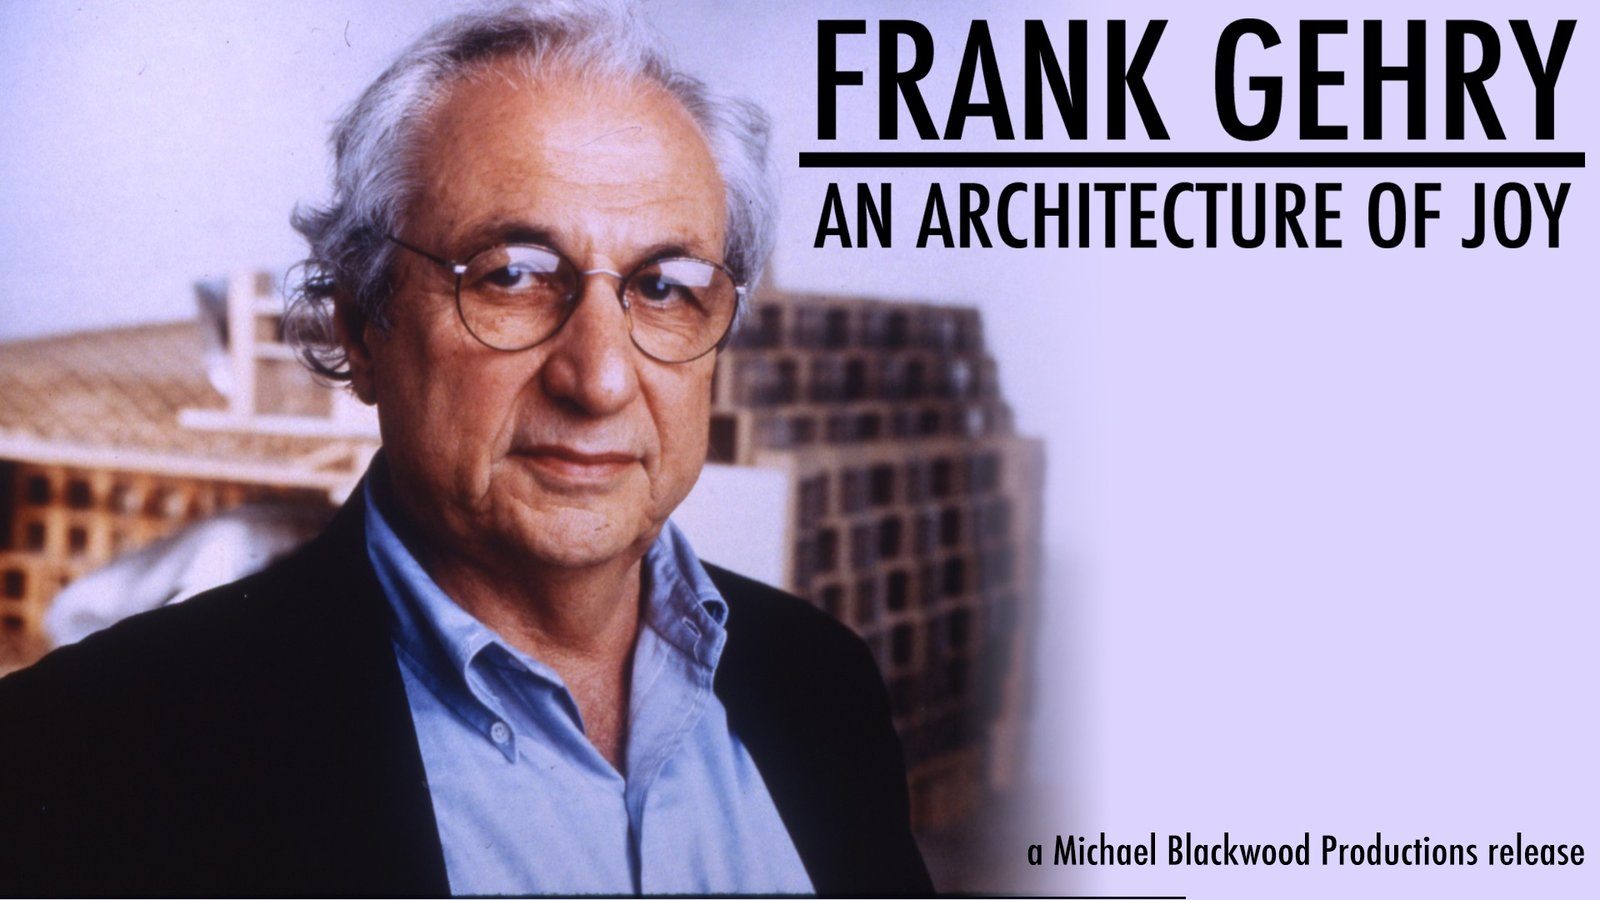 Frank Gehry - An Architecture of Joy